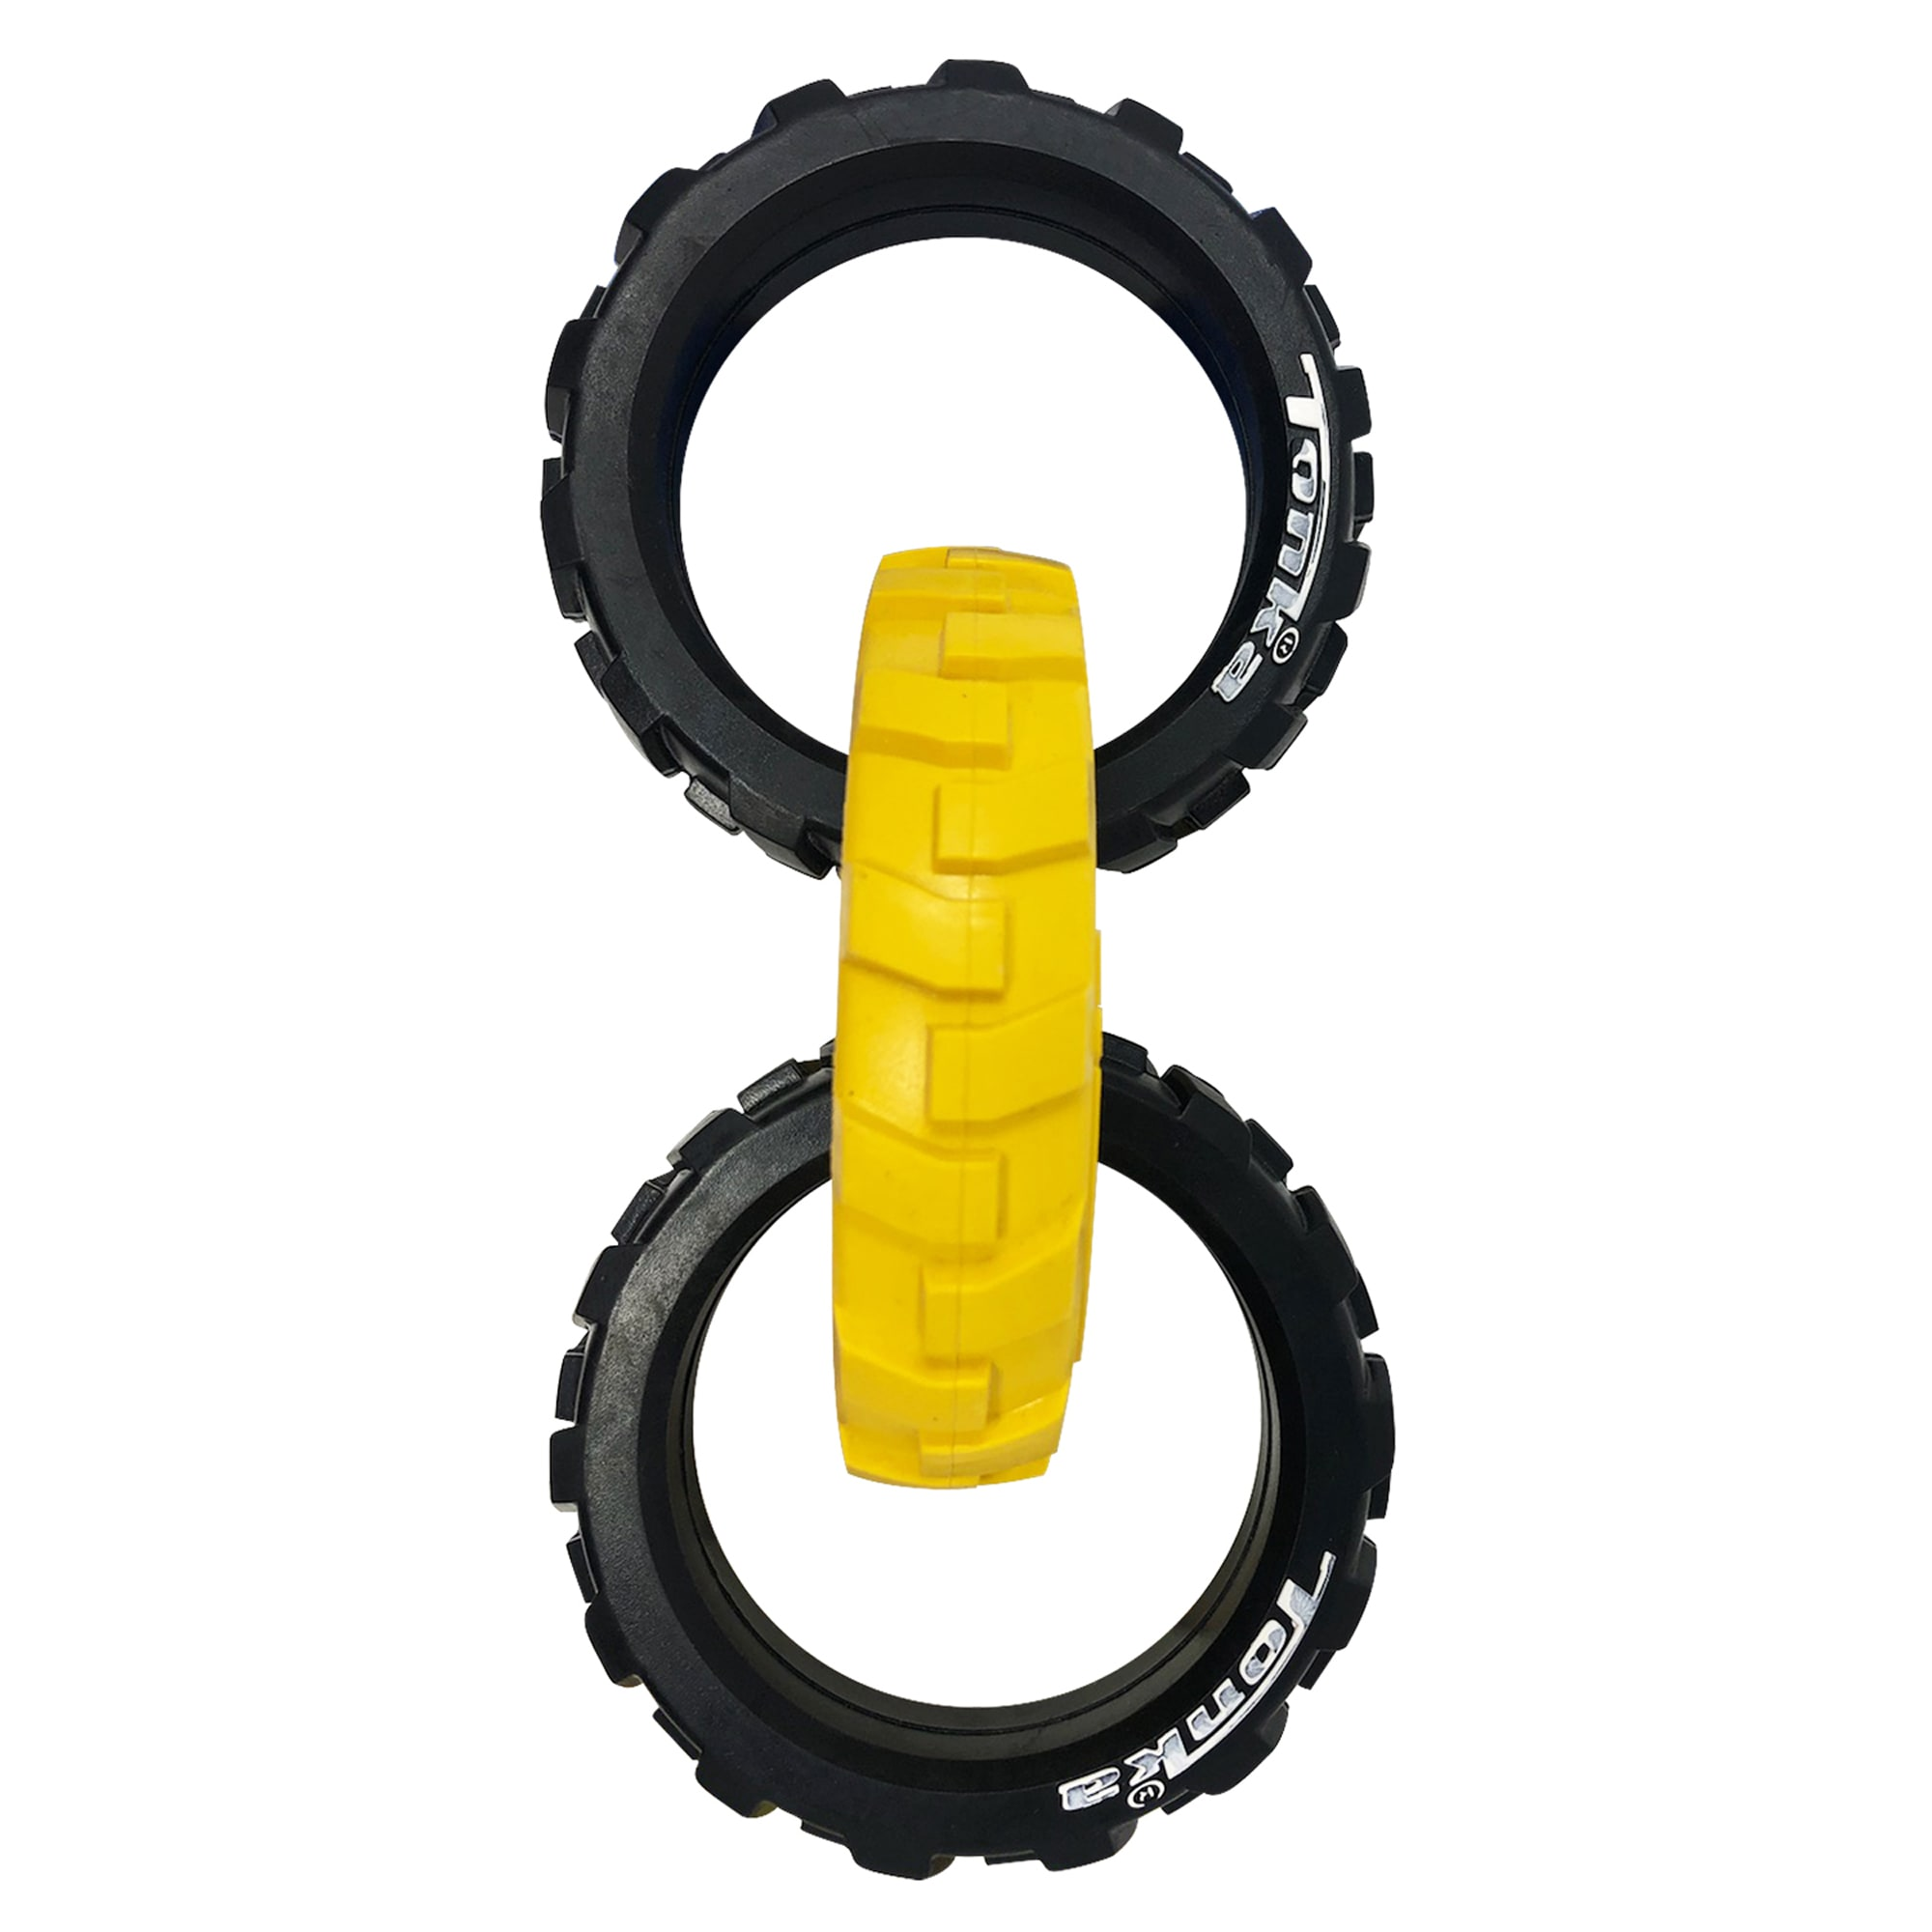 Tonka Flex Tread 3-Ring Tug Dog Toys, Medium, Yellow / Black